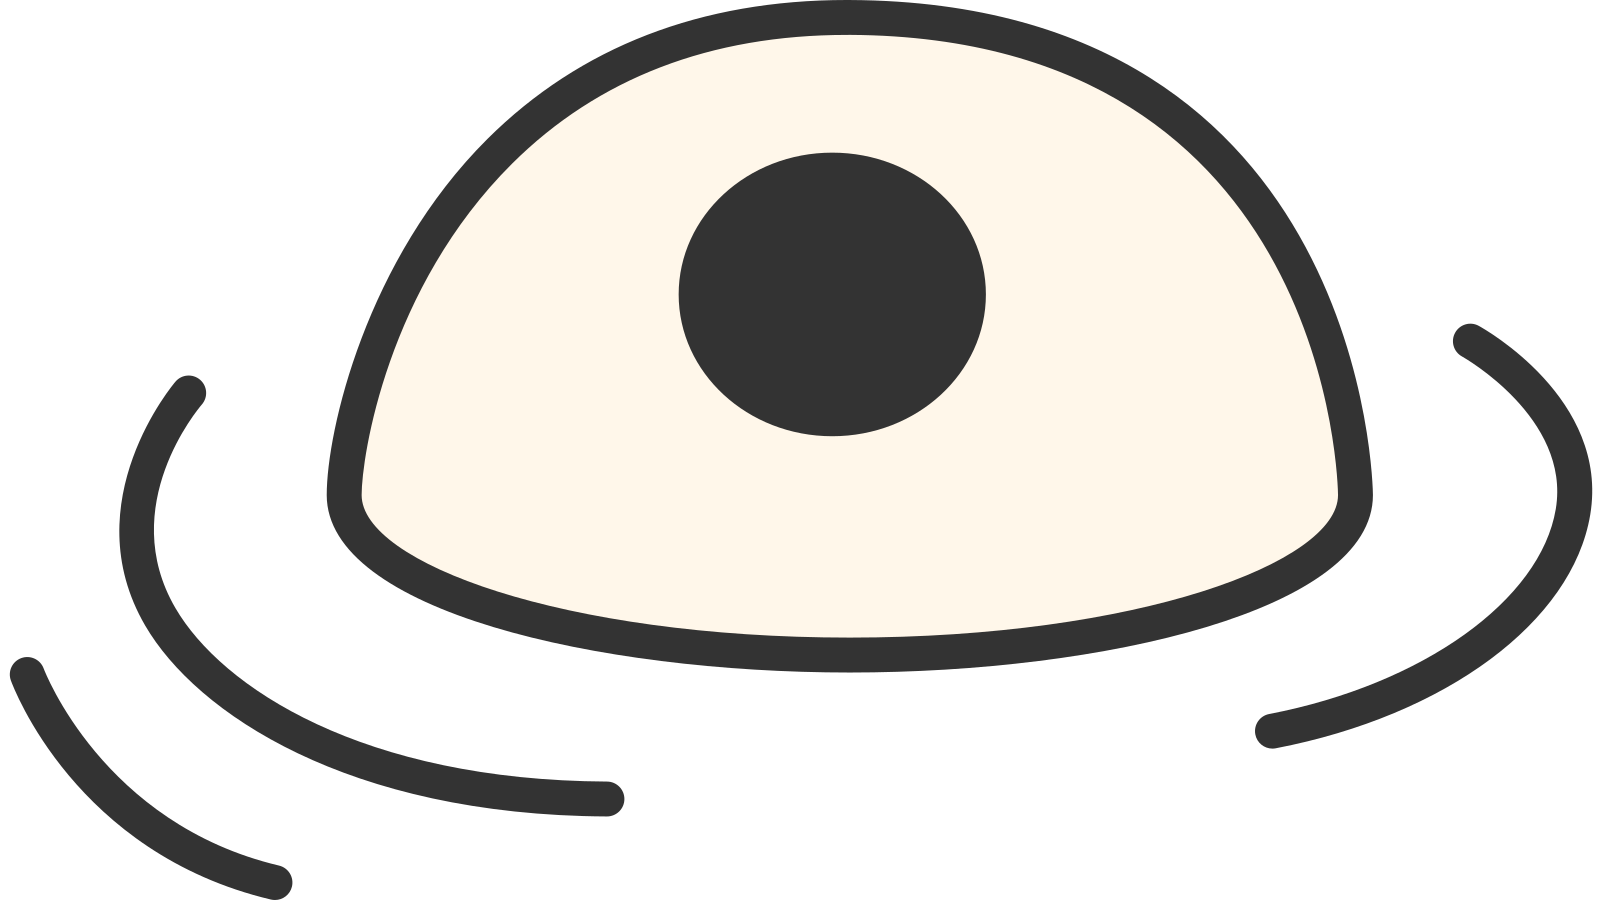 style eye halloween Vector images in PNG and SVG | Icons8 Illustrations